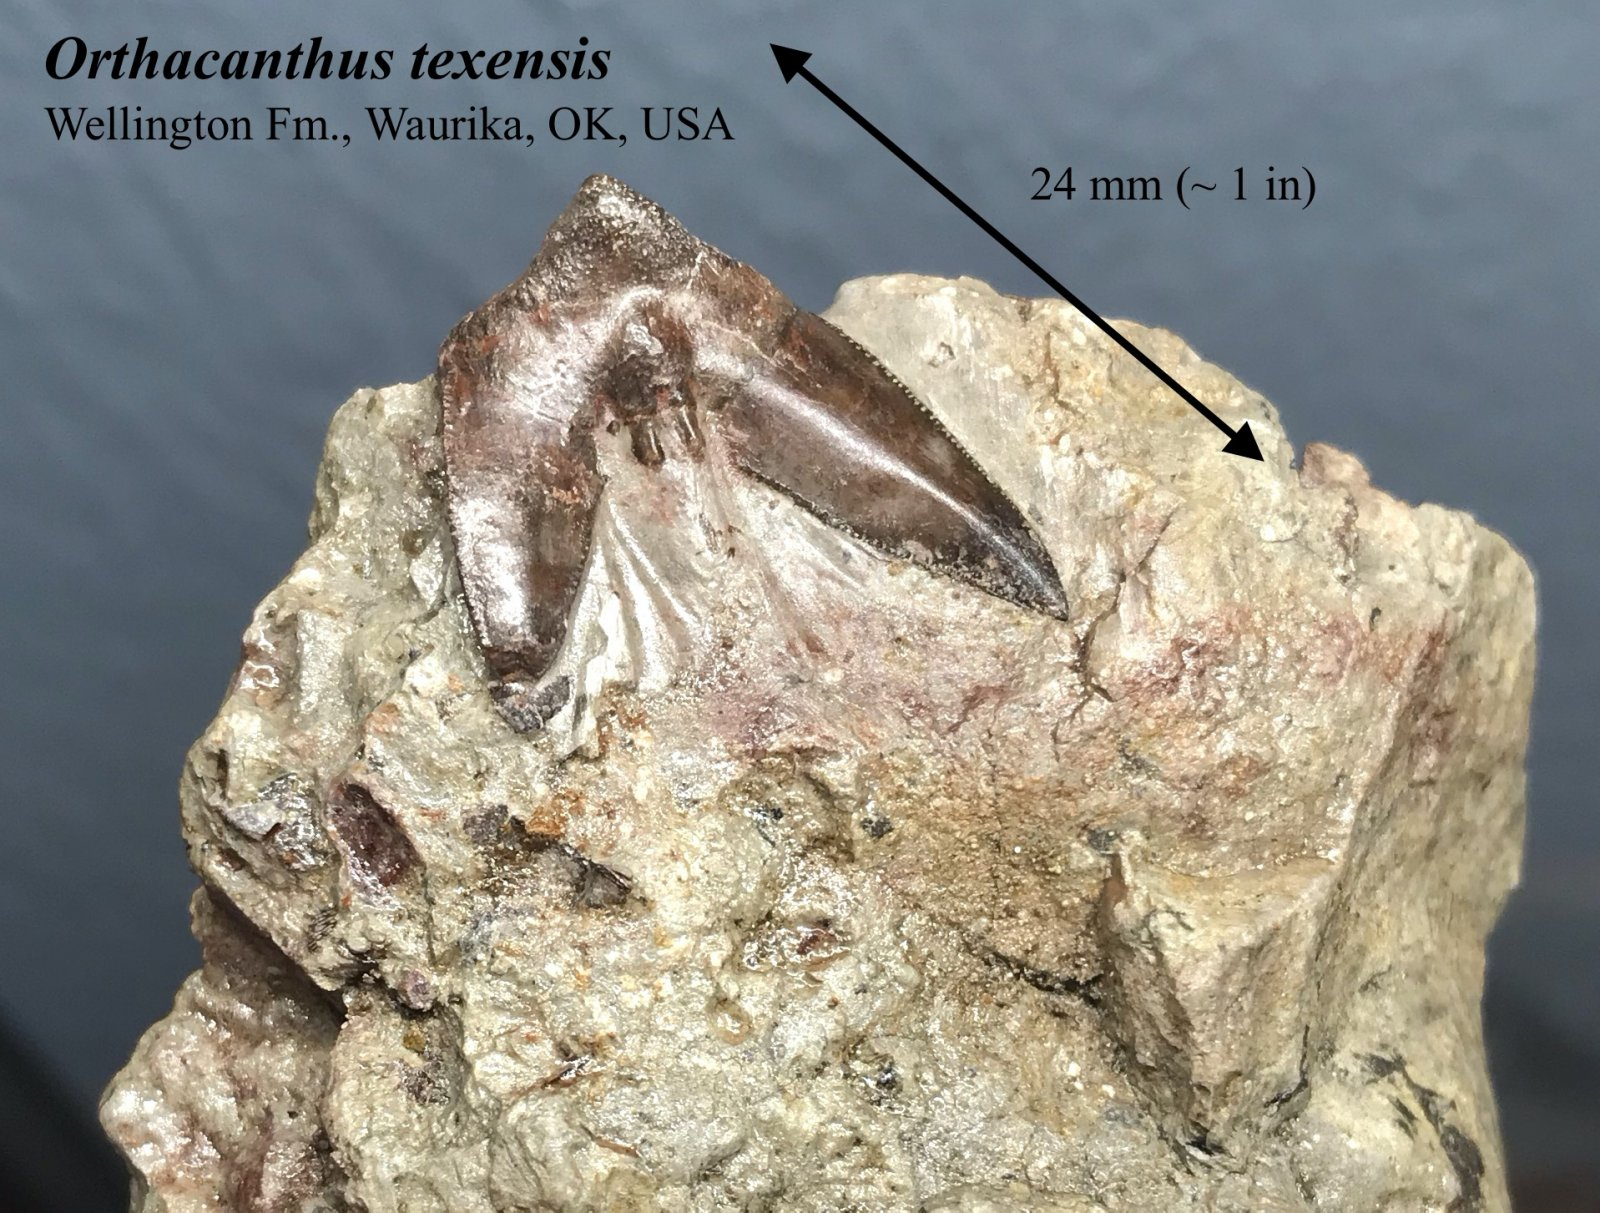 Orthacanthus texensis